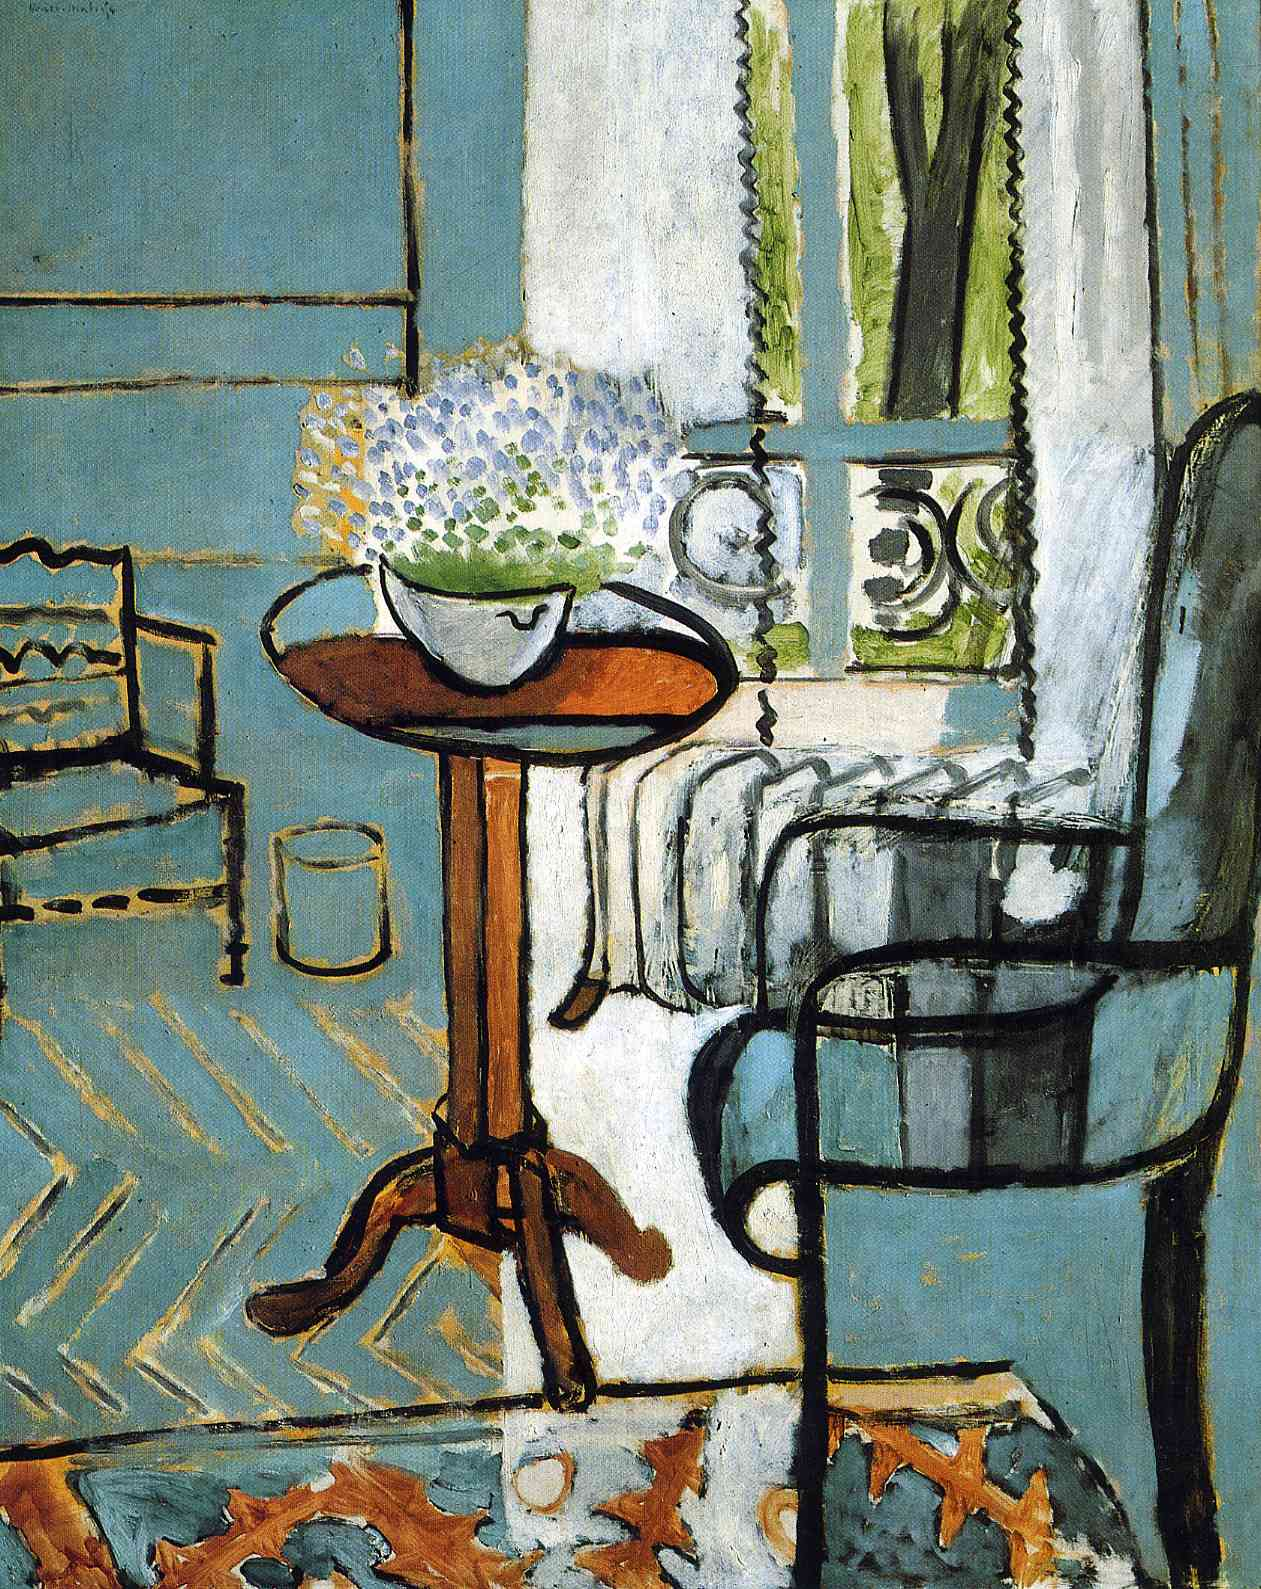 The window henri matisse encyclopedia of for Par la fenetre ouverte bonjour